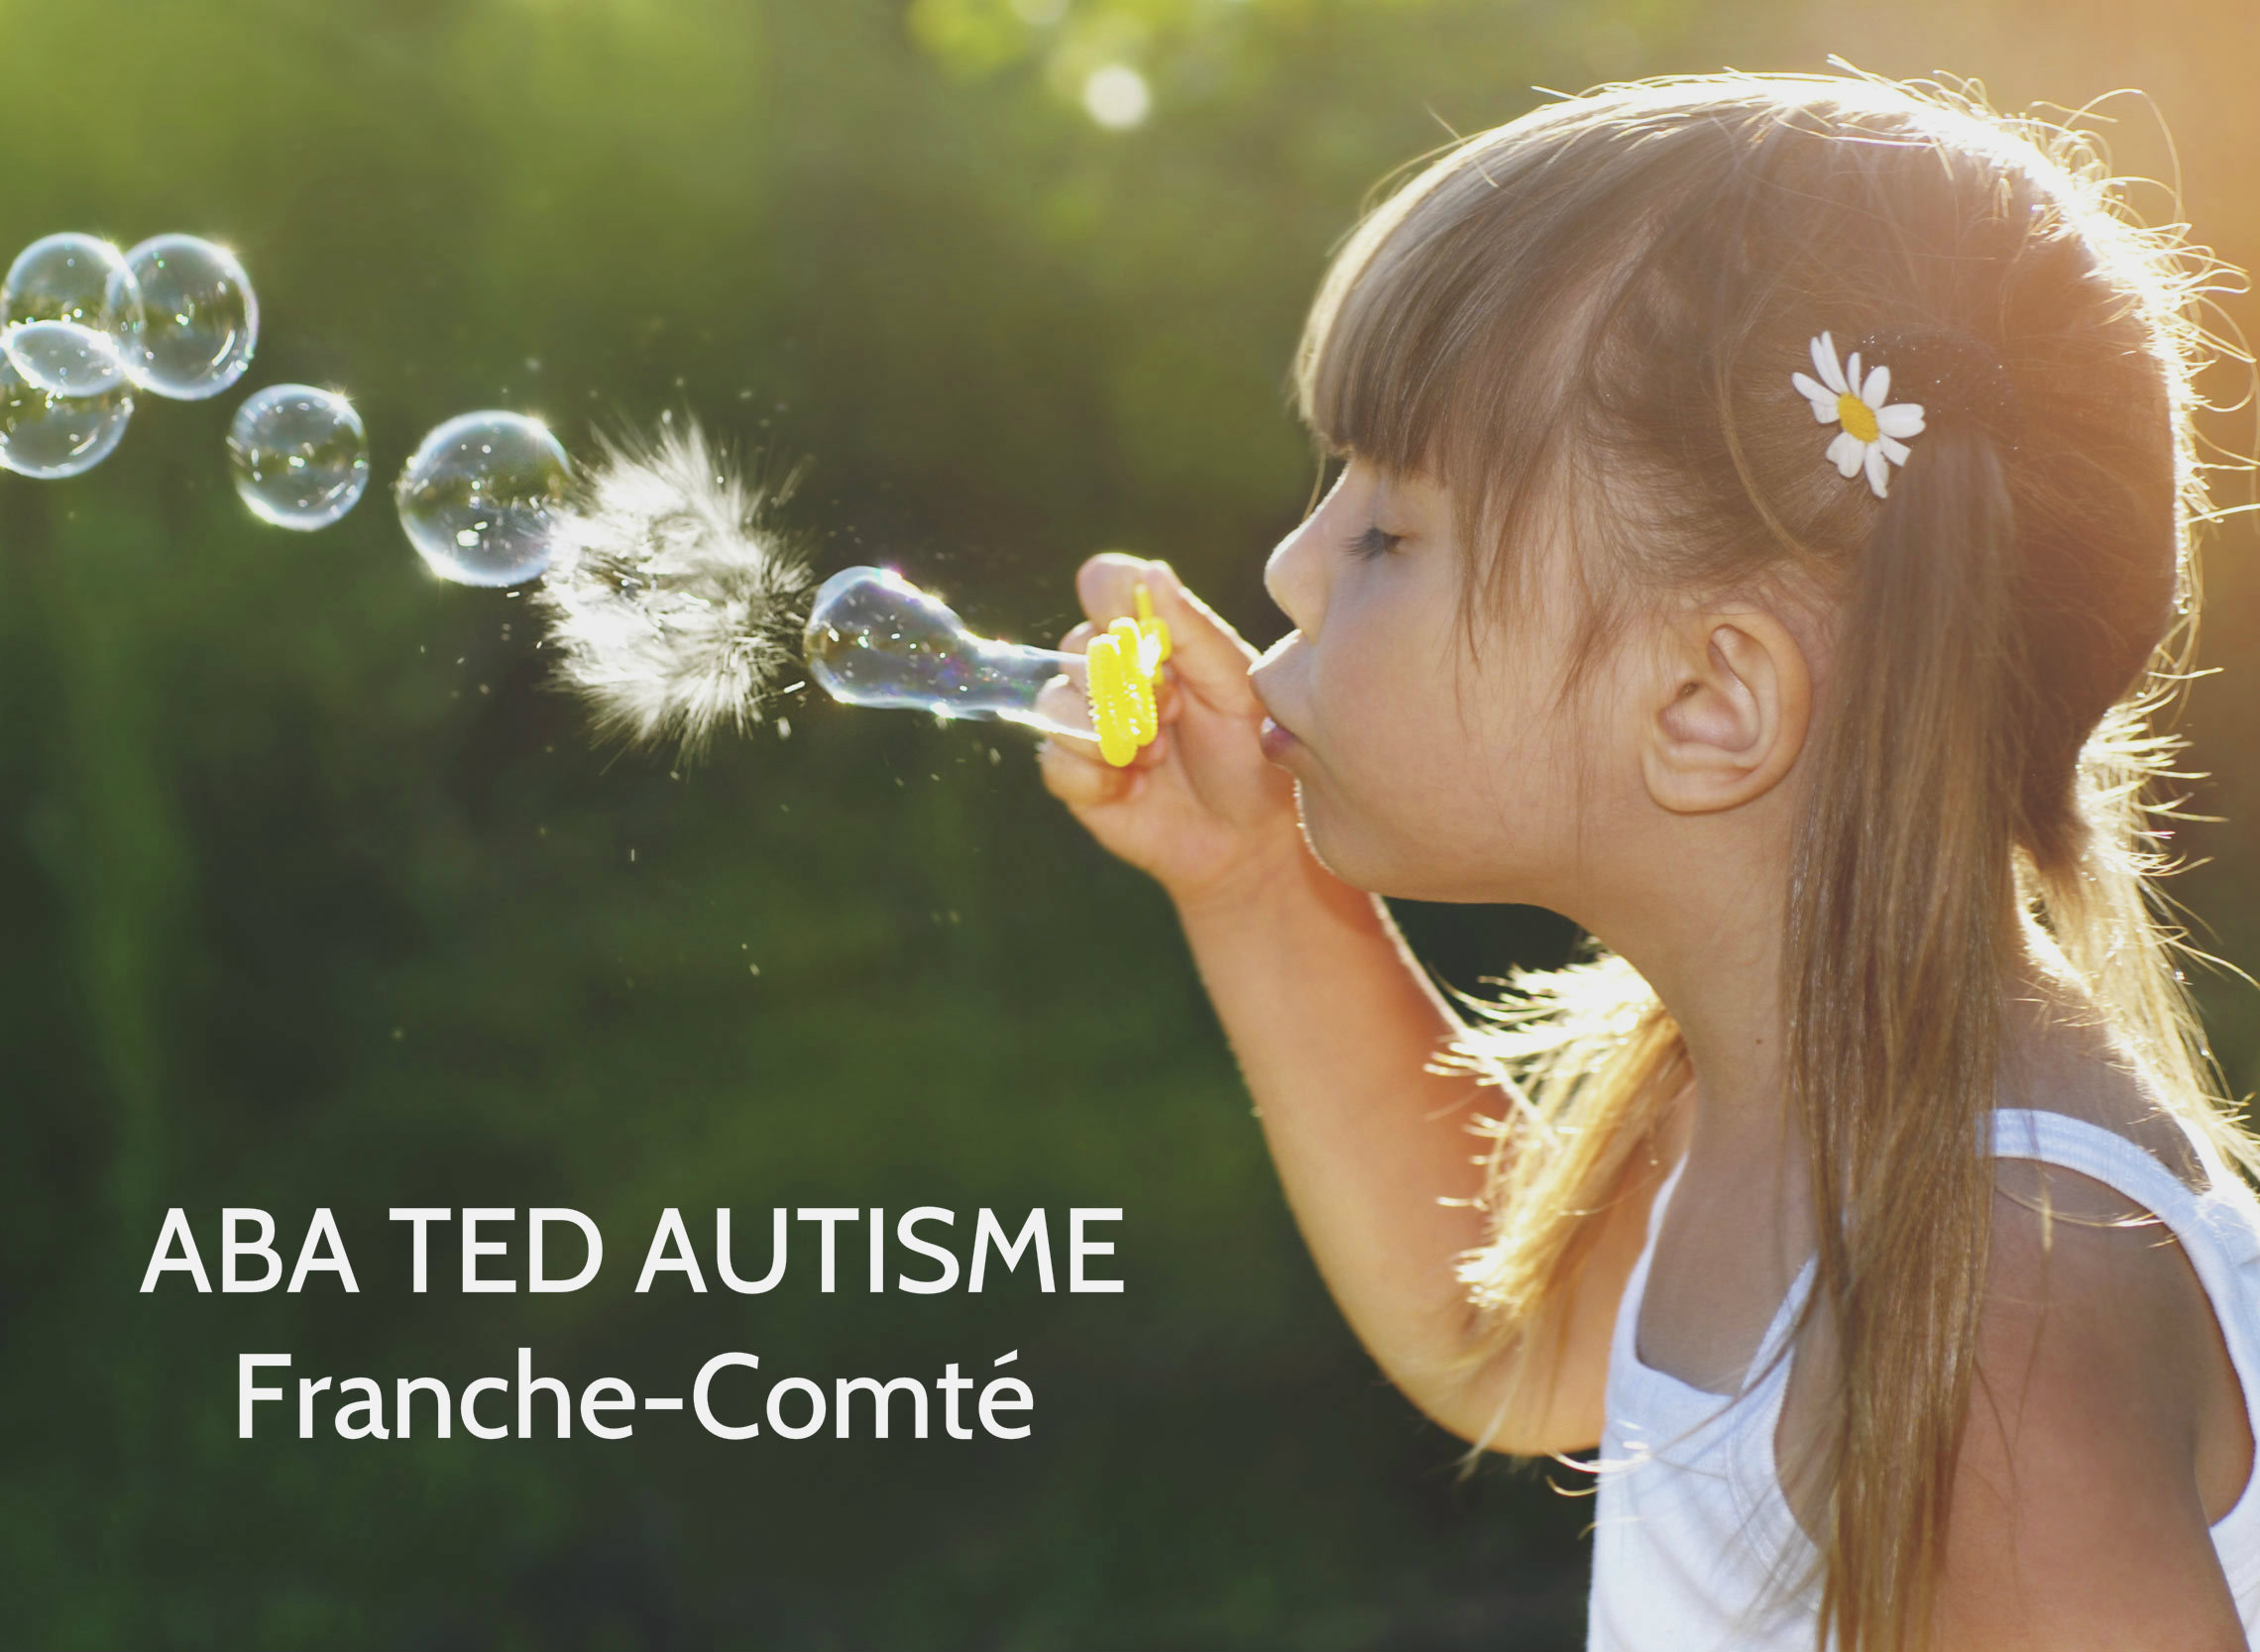 Association - ABA TED AUTISME FRANCHE-COMTE